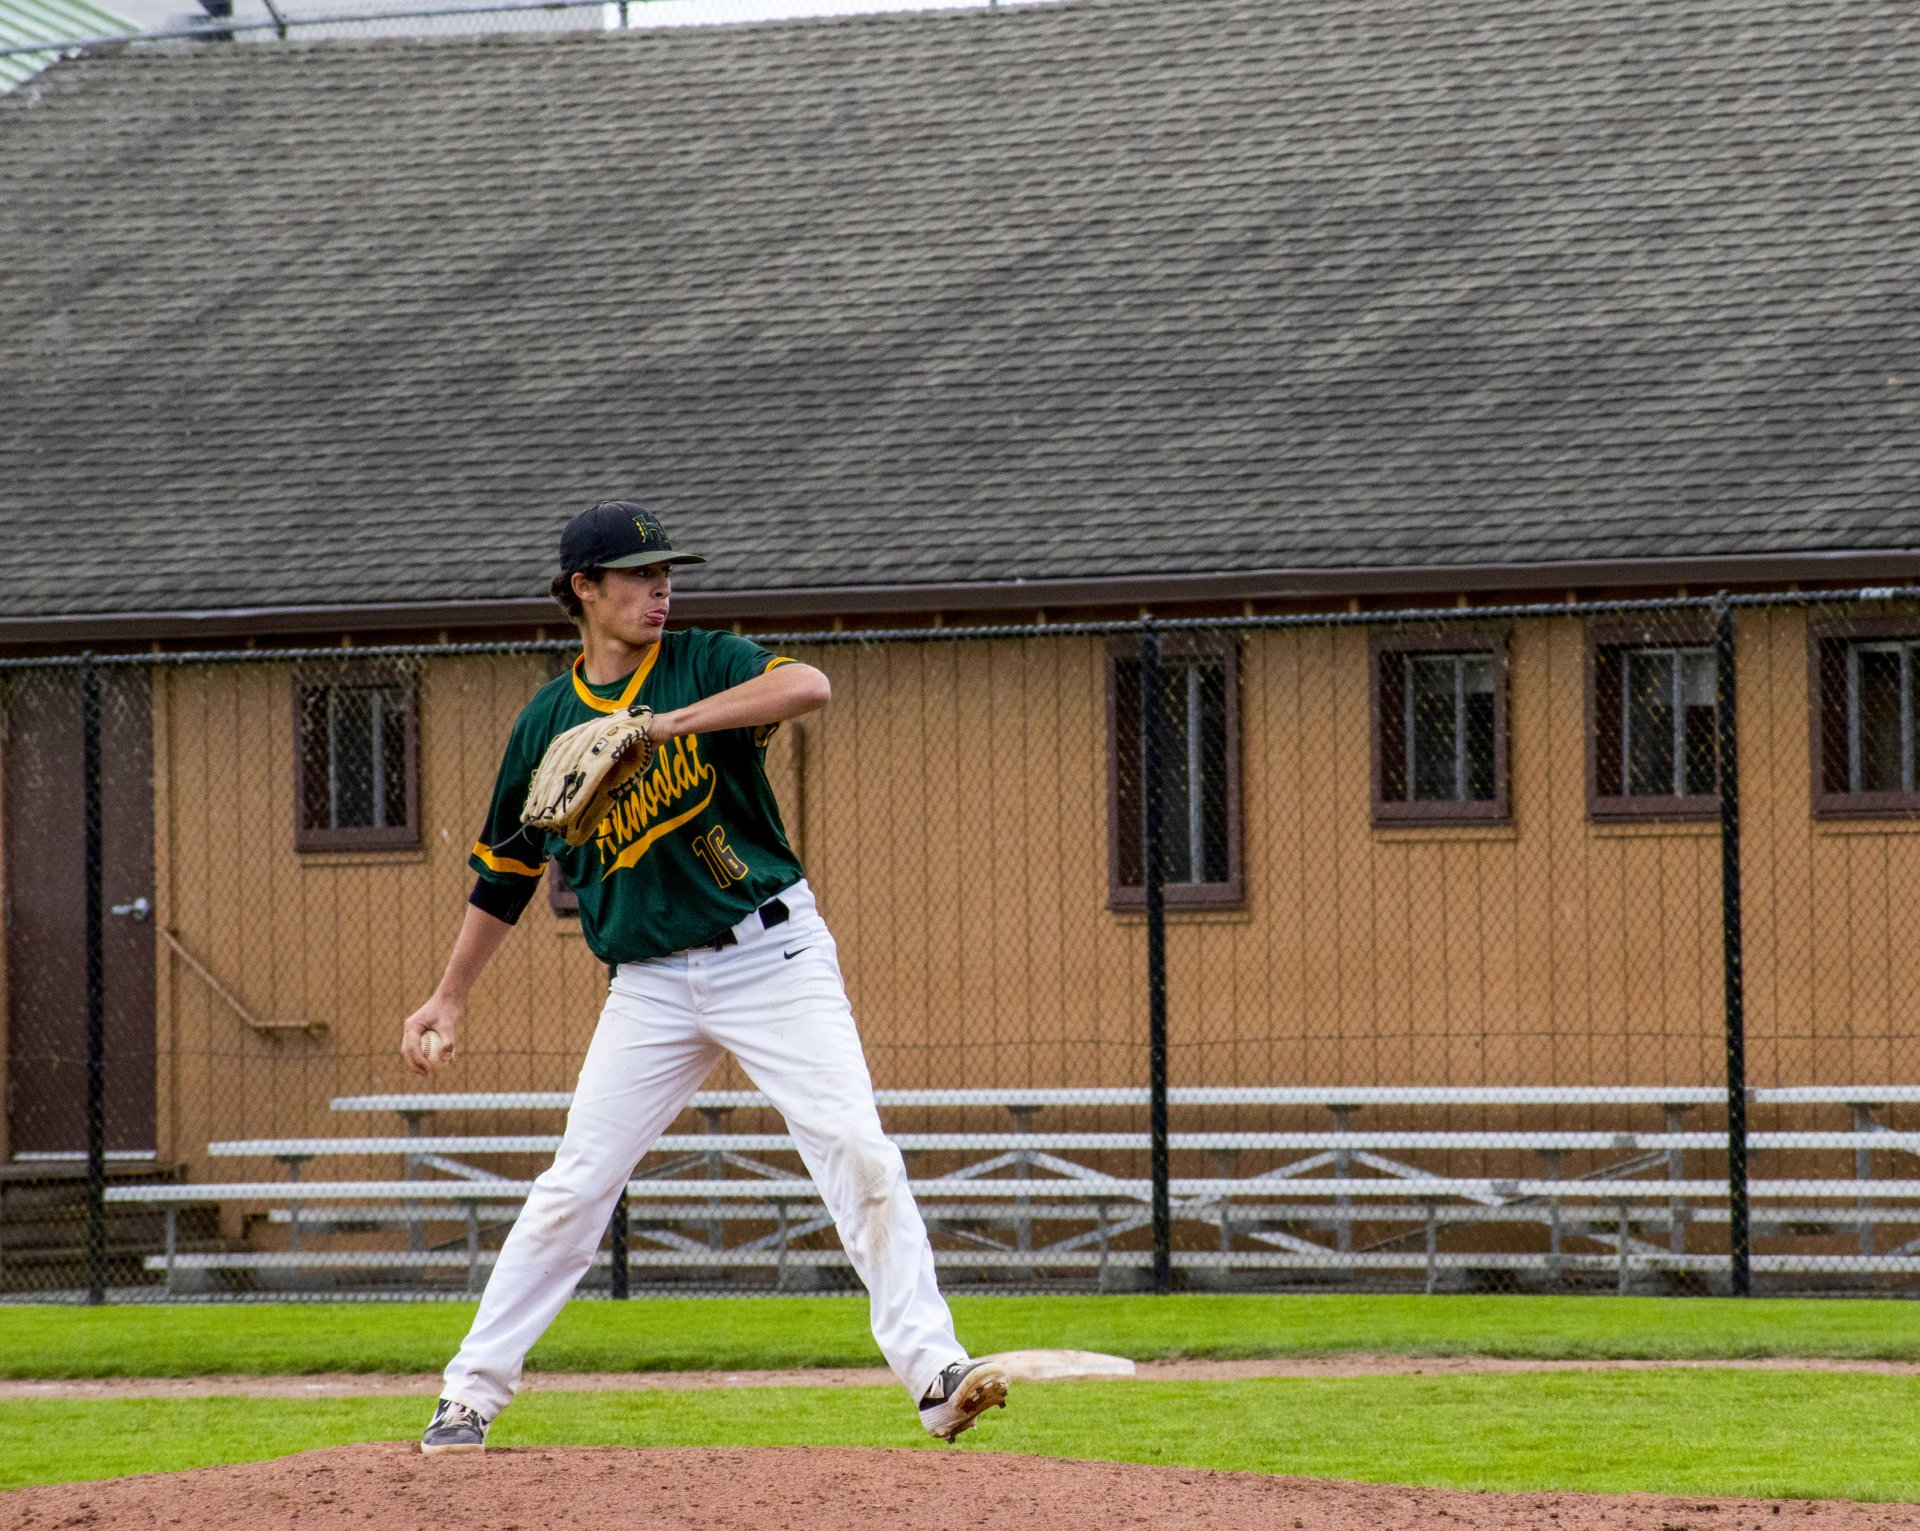 A Humboldt State pitcher delivers the pitch during the Jacks club baseball game on September 28th, 2019 at the Arcata Ball Park. | Photo by Liam Warner